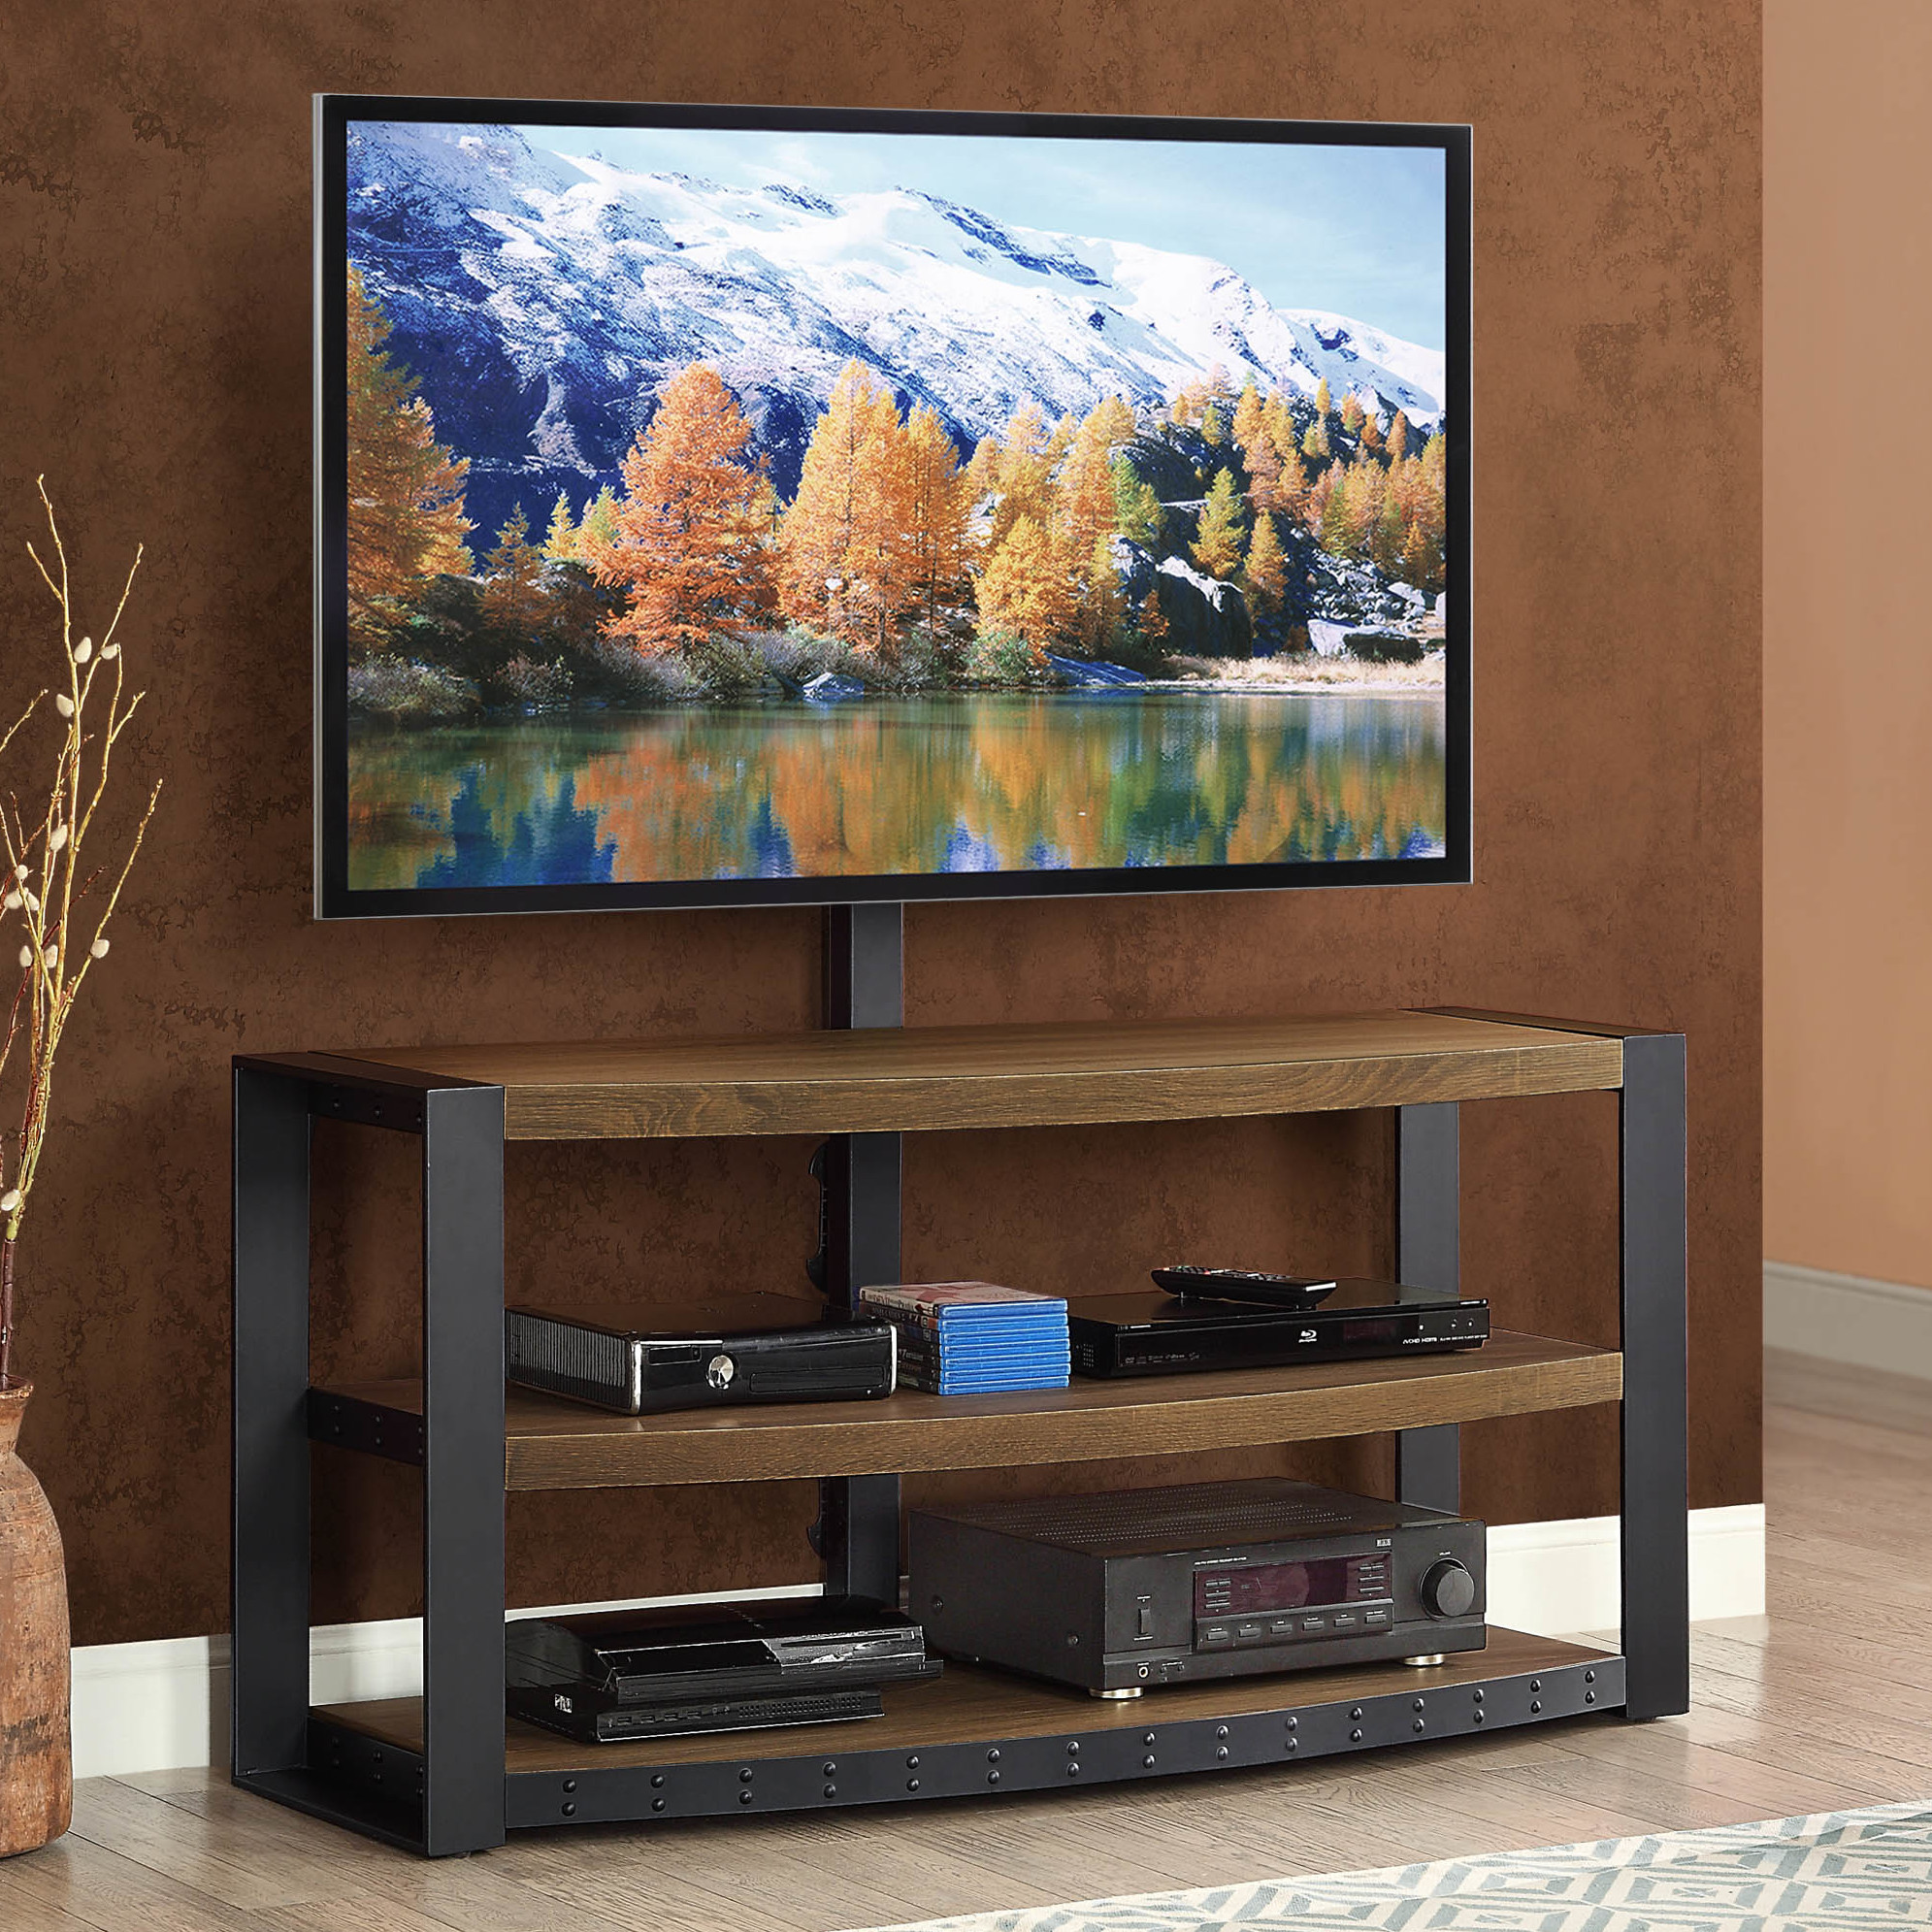 Awesome whalen tv stand for furniture accessories design with whalen 3-in-1 tv stand